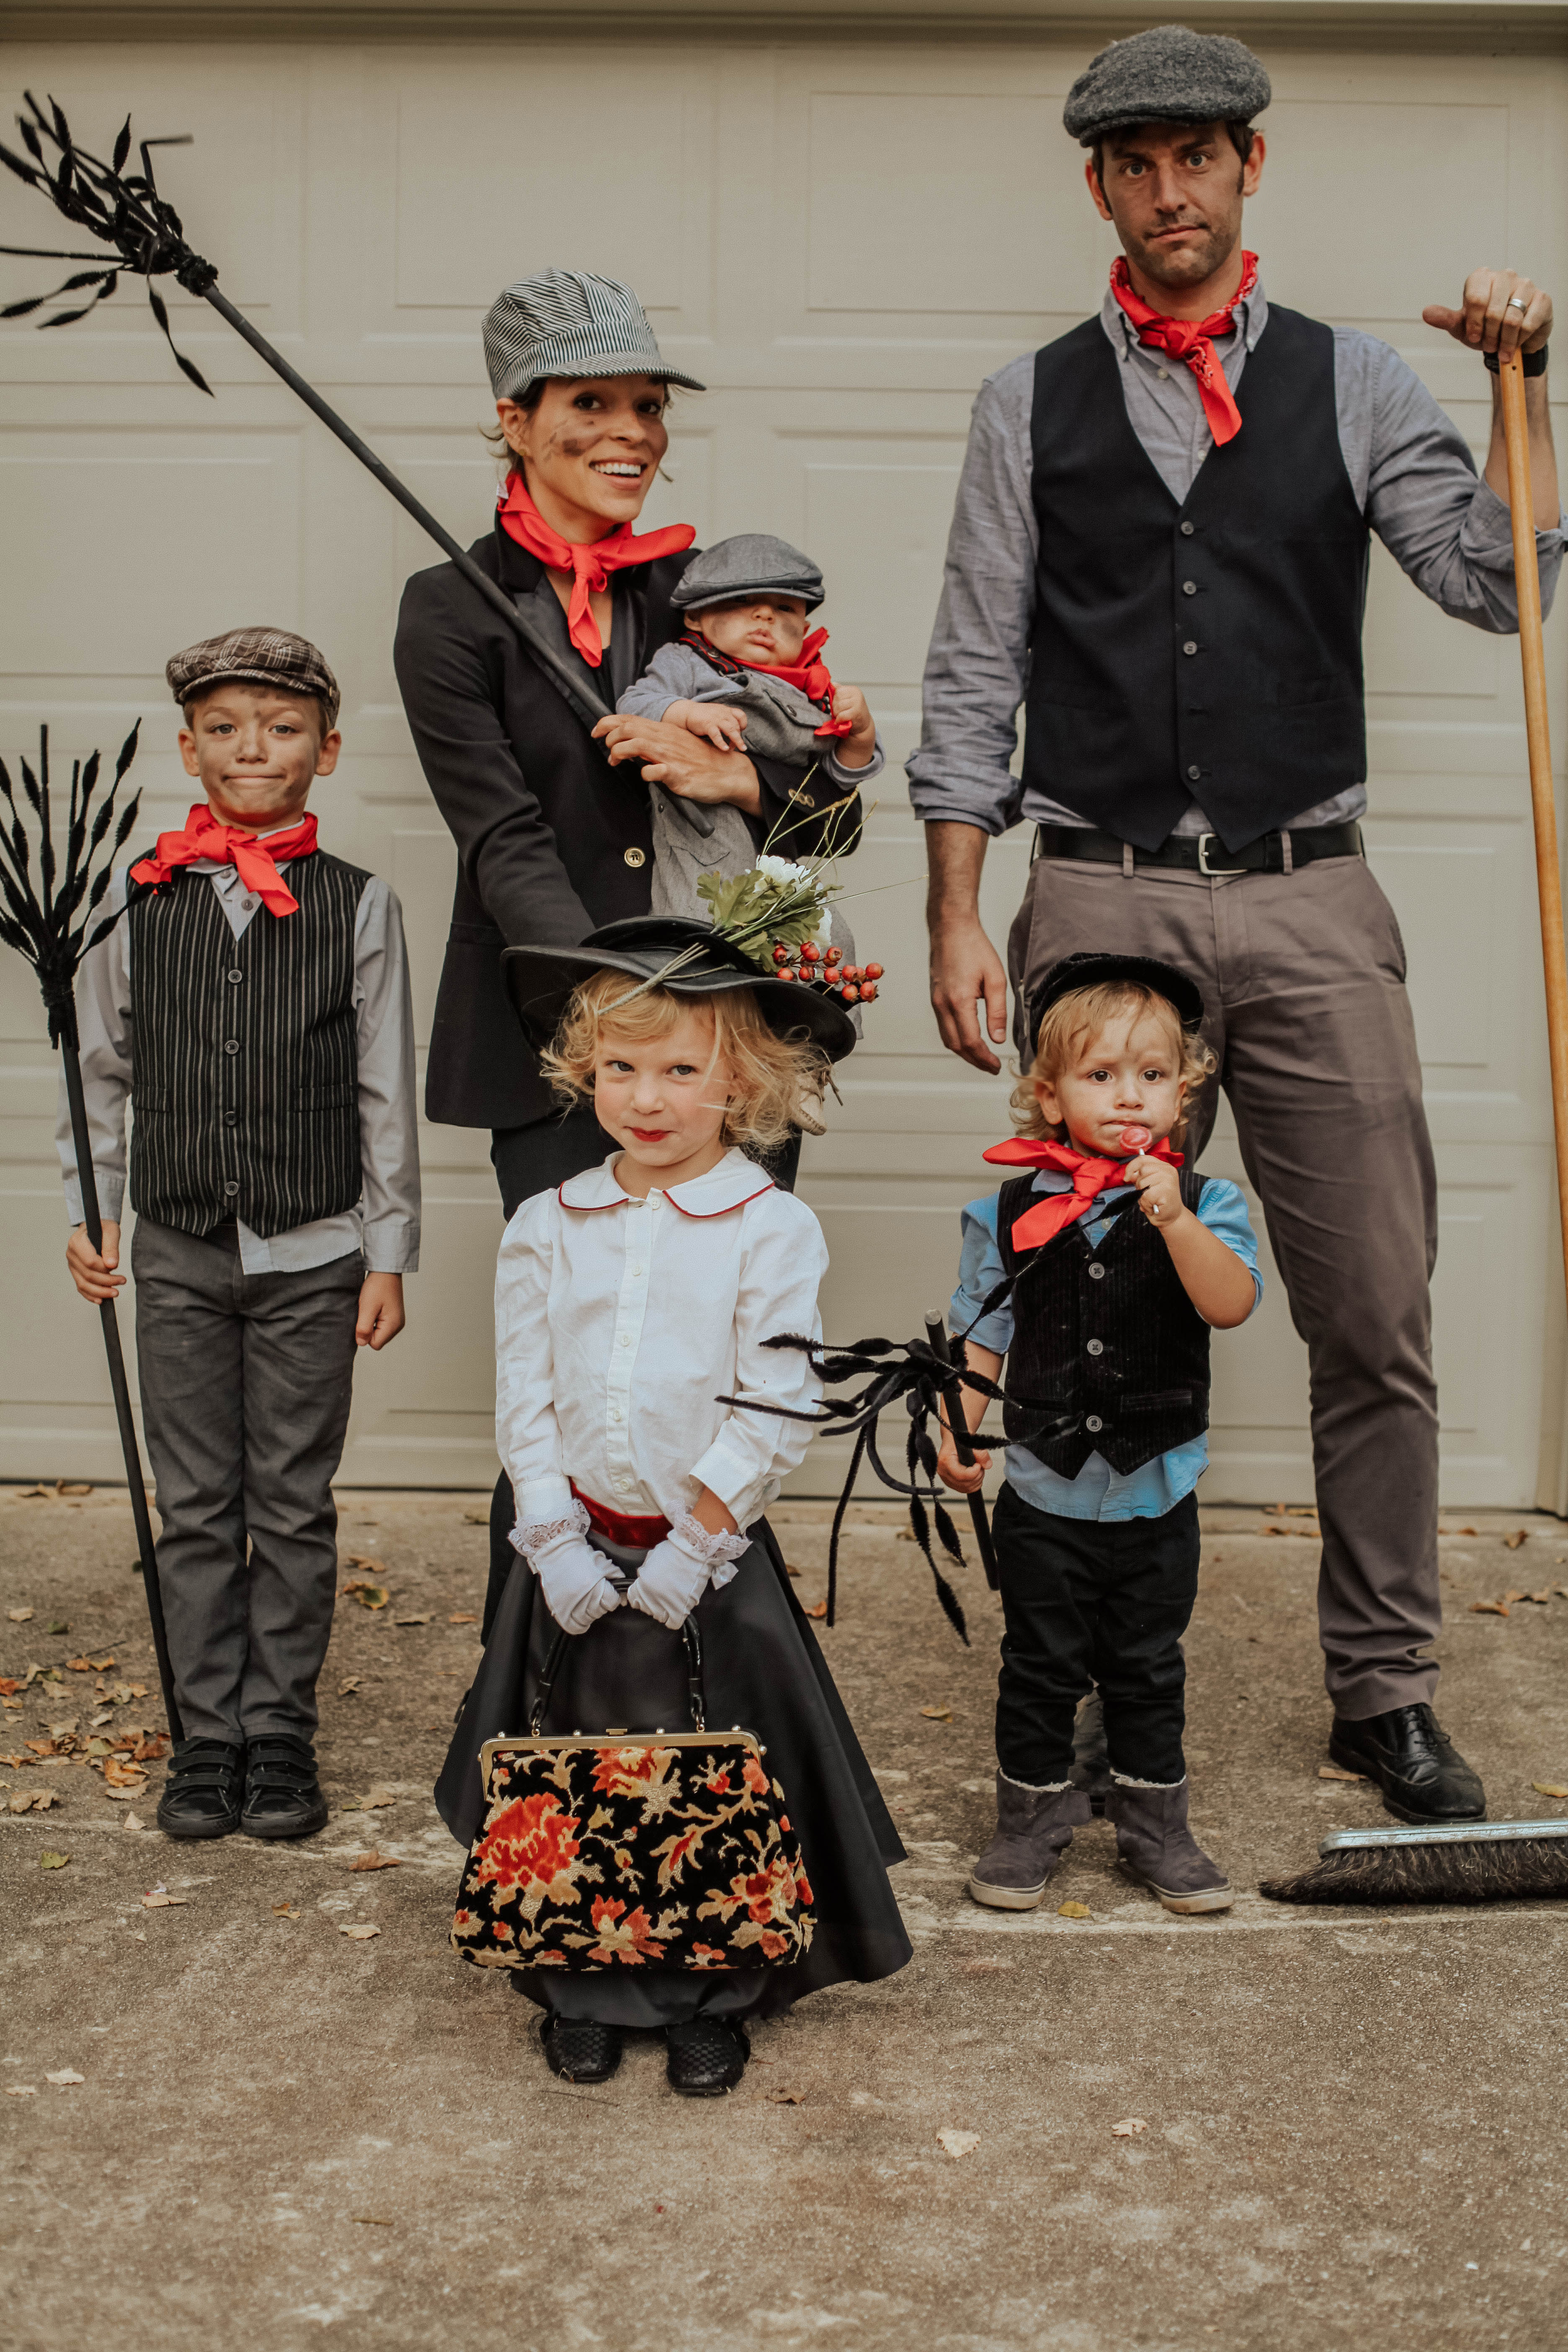 Halloween Costumes Ideas.Family Halloween Costume Ideas In Honor Of Design